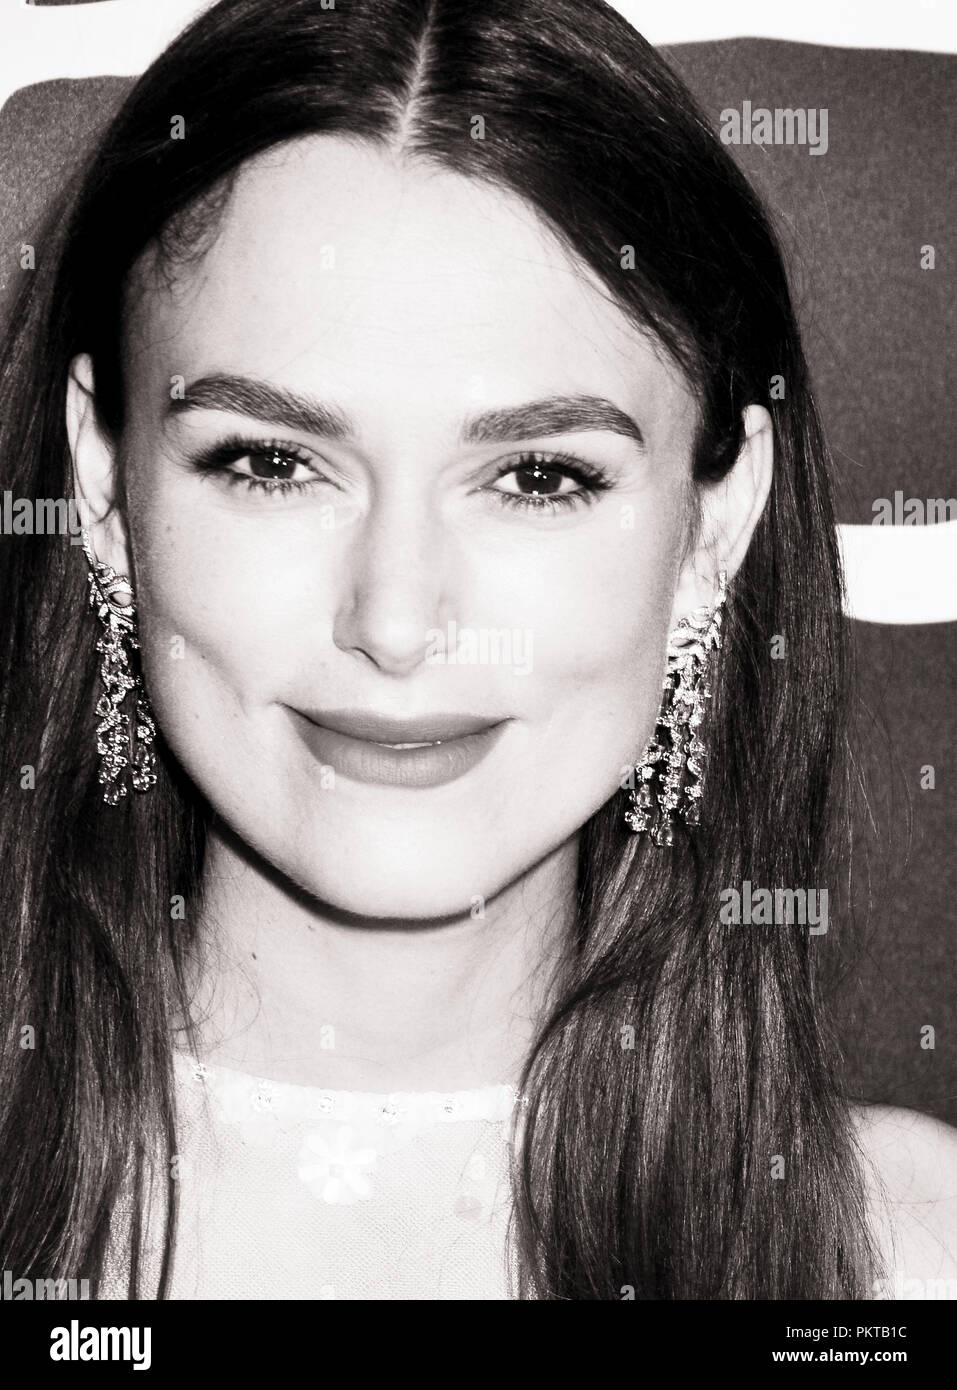 Keira Knightley 024 attends the premiere of Bleecker Street Media's 'Colette' at Samuel Goldwyn Theater on September 14, 2018 in Beverly Hills, California - Stock Image